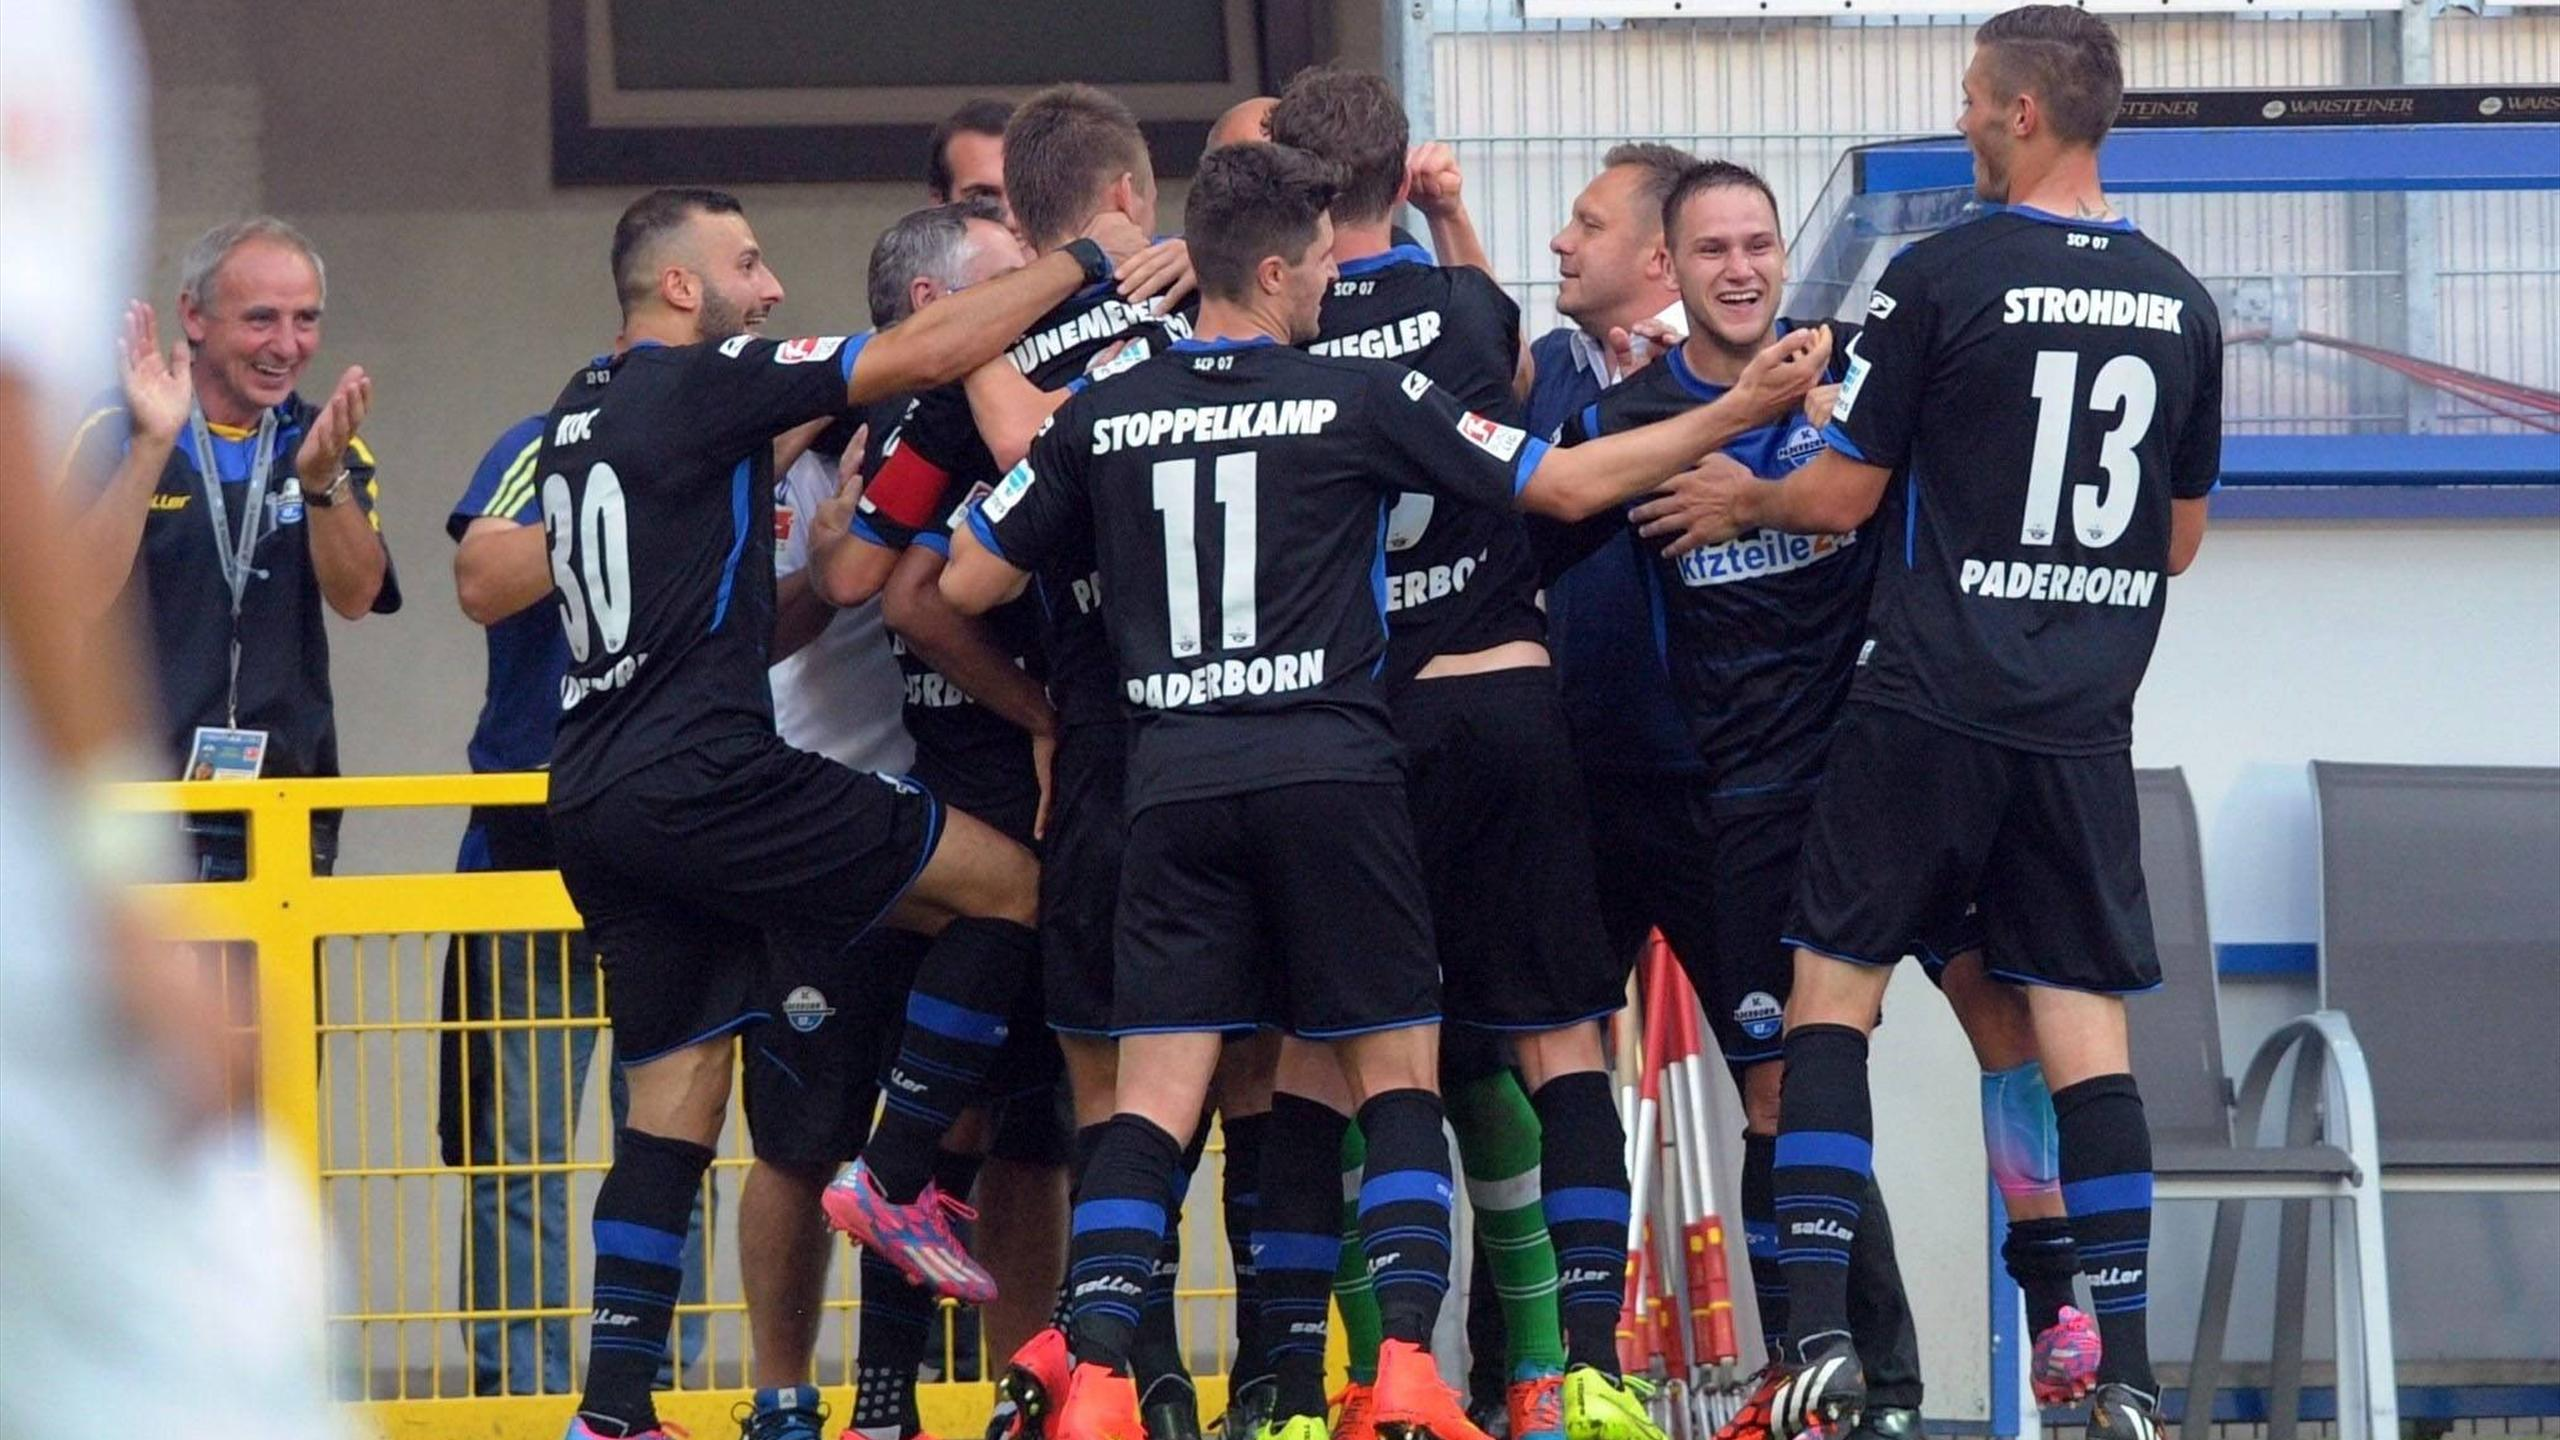 Video: Paderborn vs Hannover 96